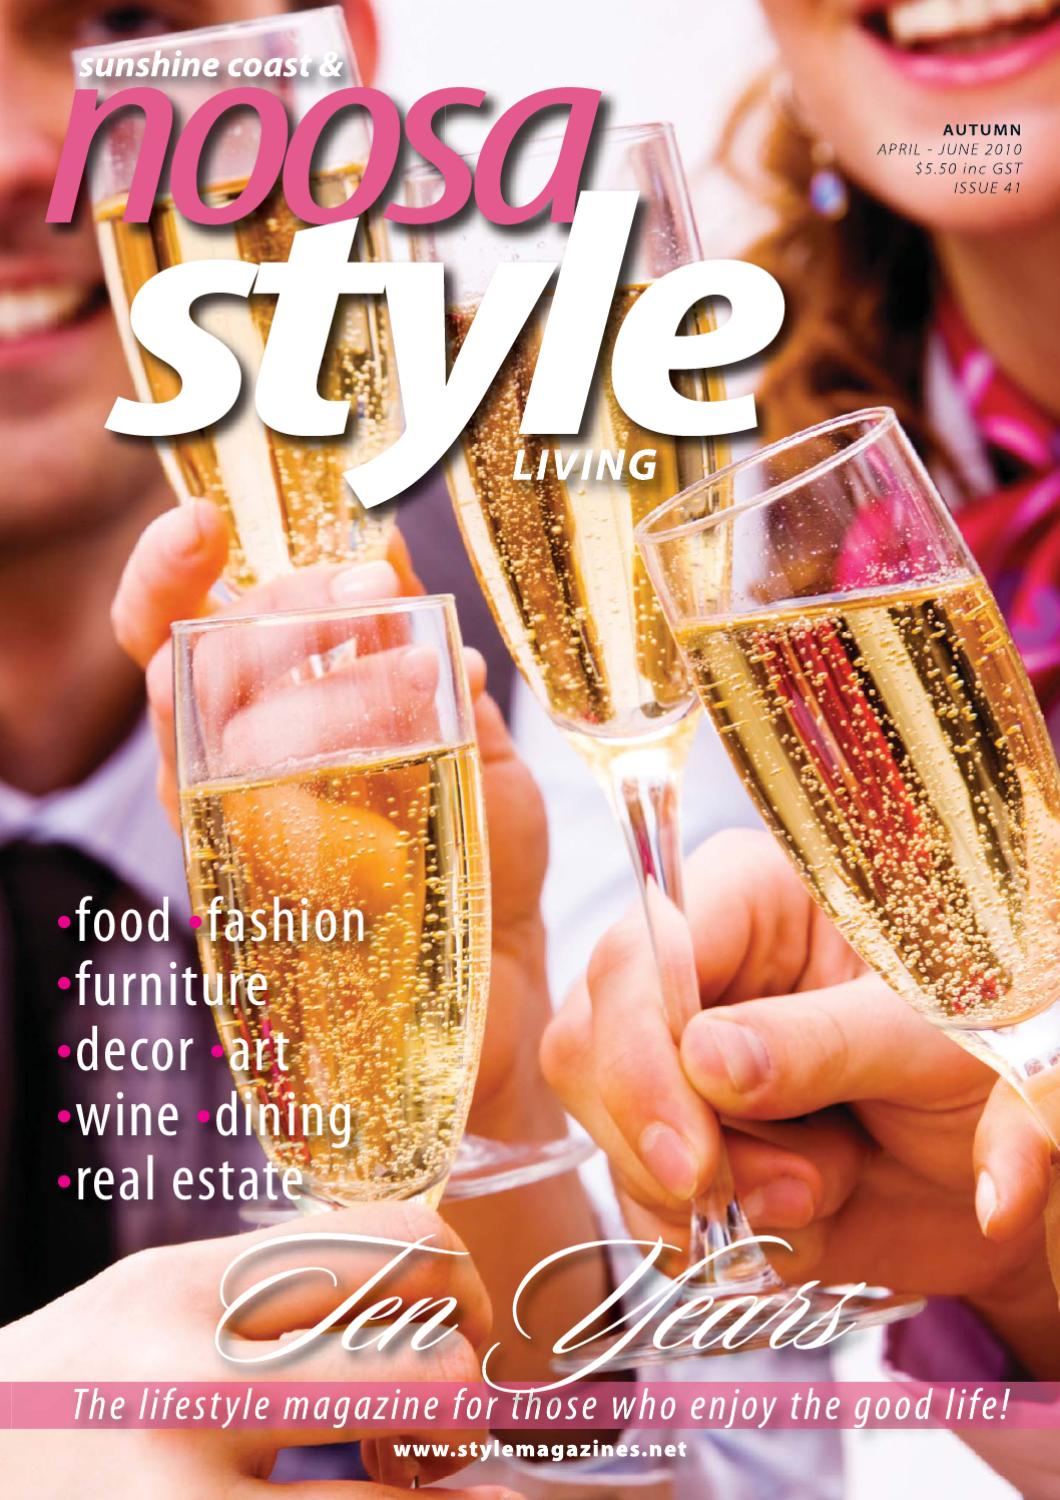 Noosa STYLE March 2010 by STYLE Living - issuu